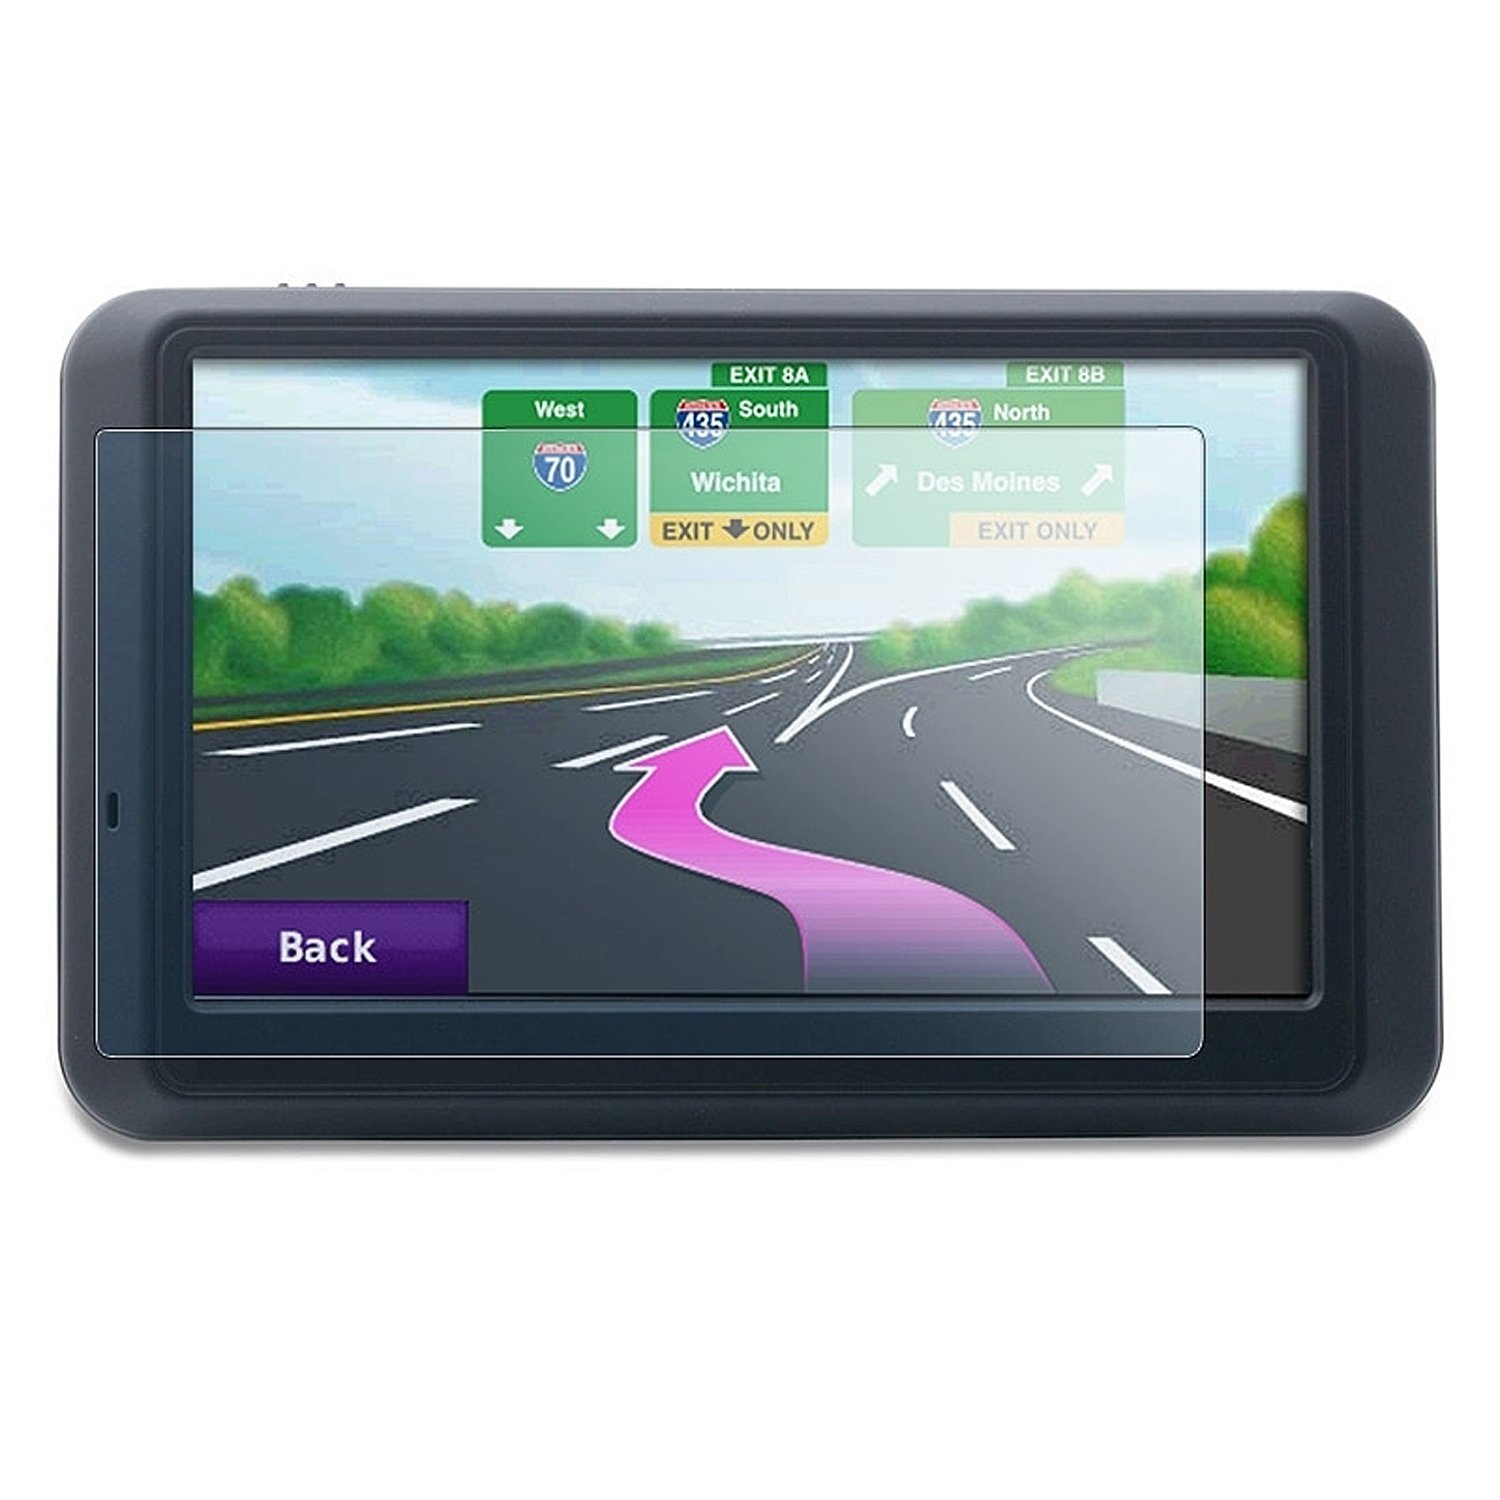 Universal 4.3-Inch GPS Screen screen protector for Magellan Roadmate and Magellan Maestro Series